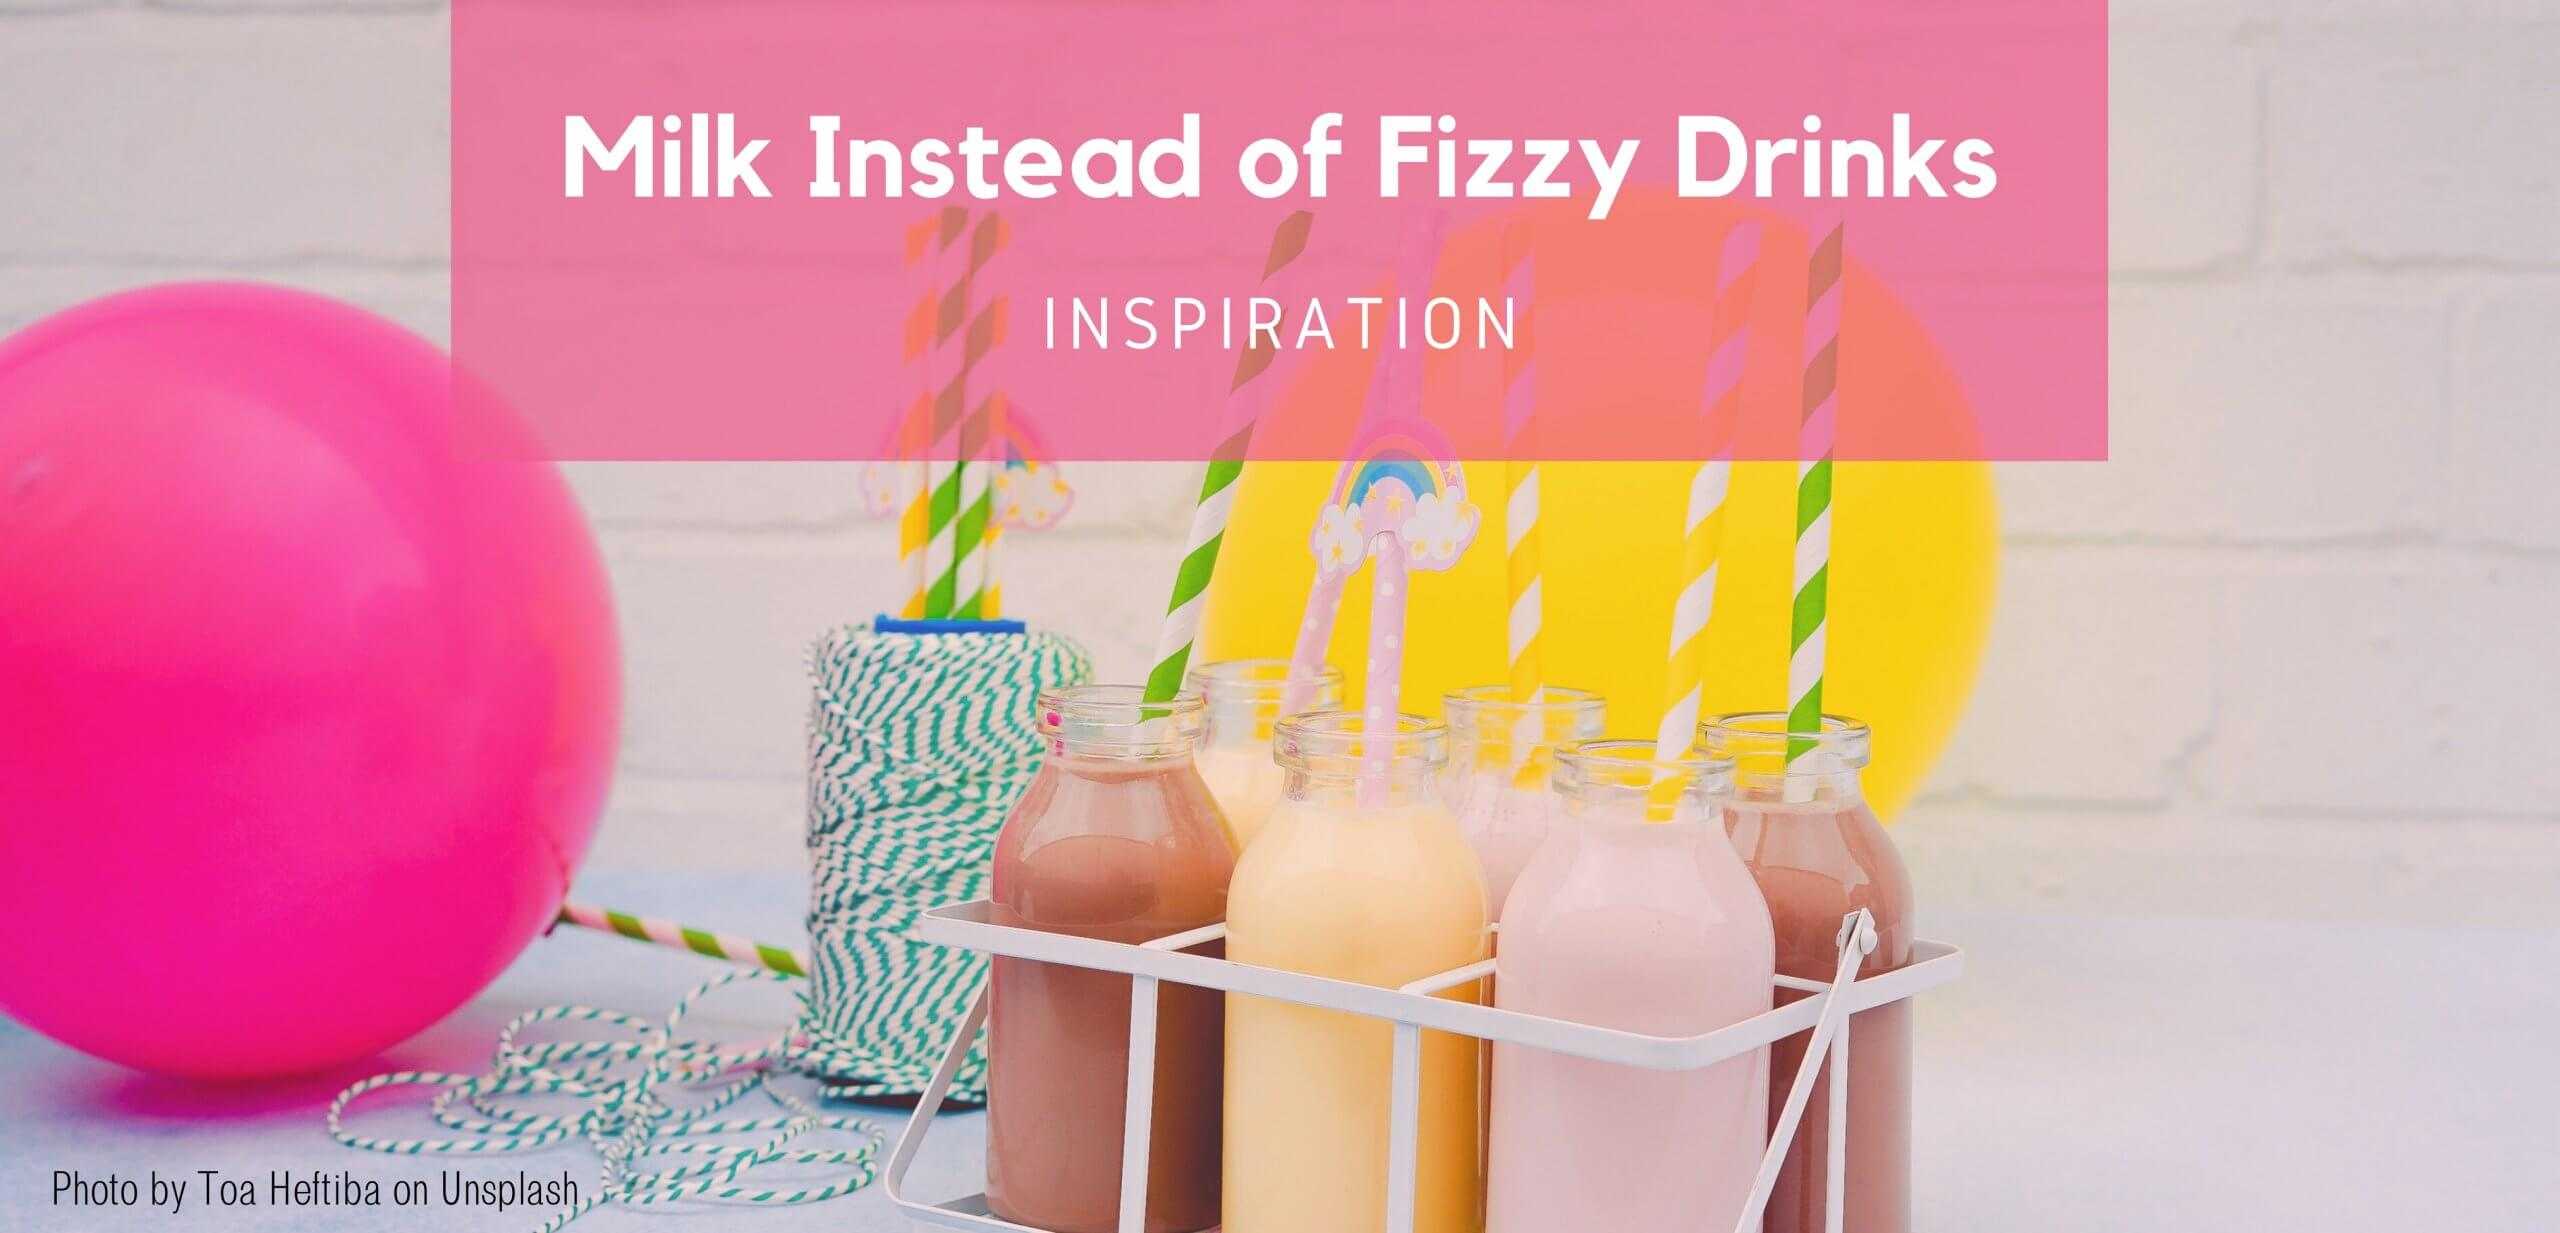 Inspiration idea of having milk instead of a fizzy drink at a party